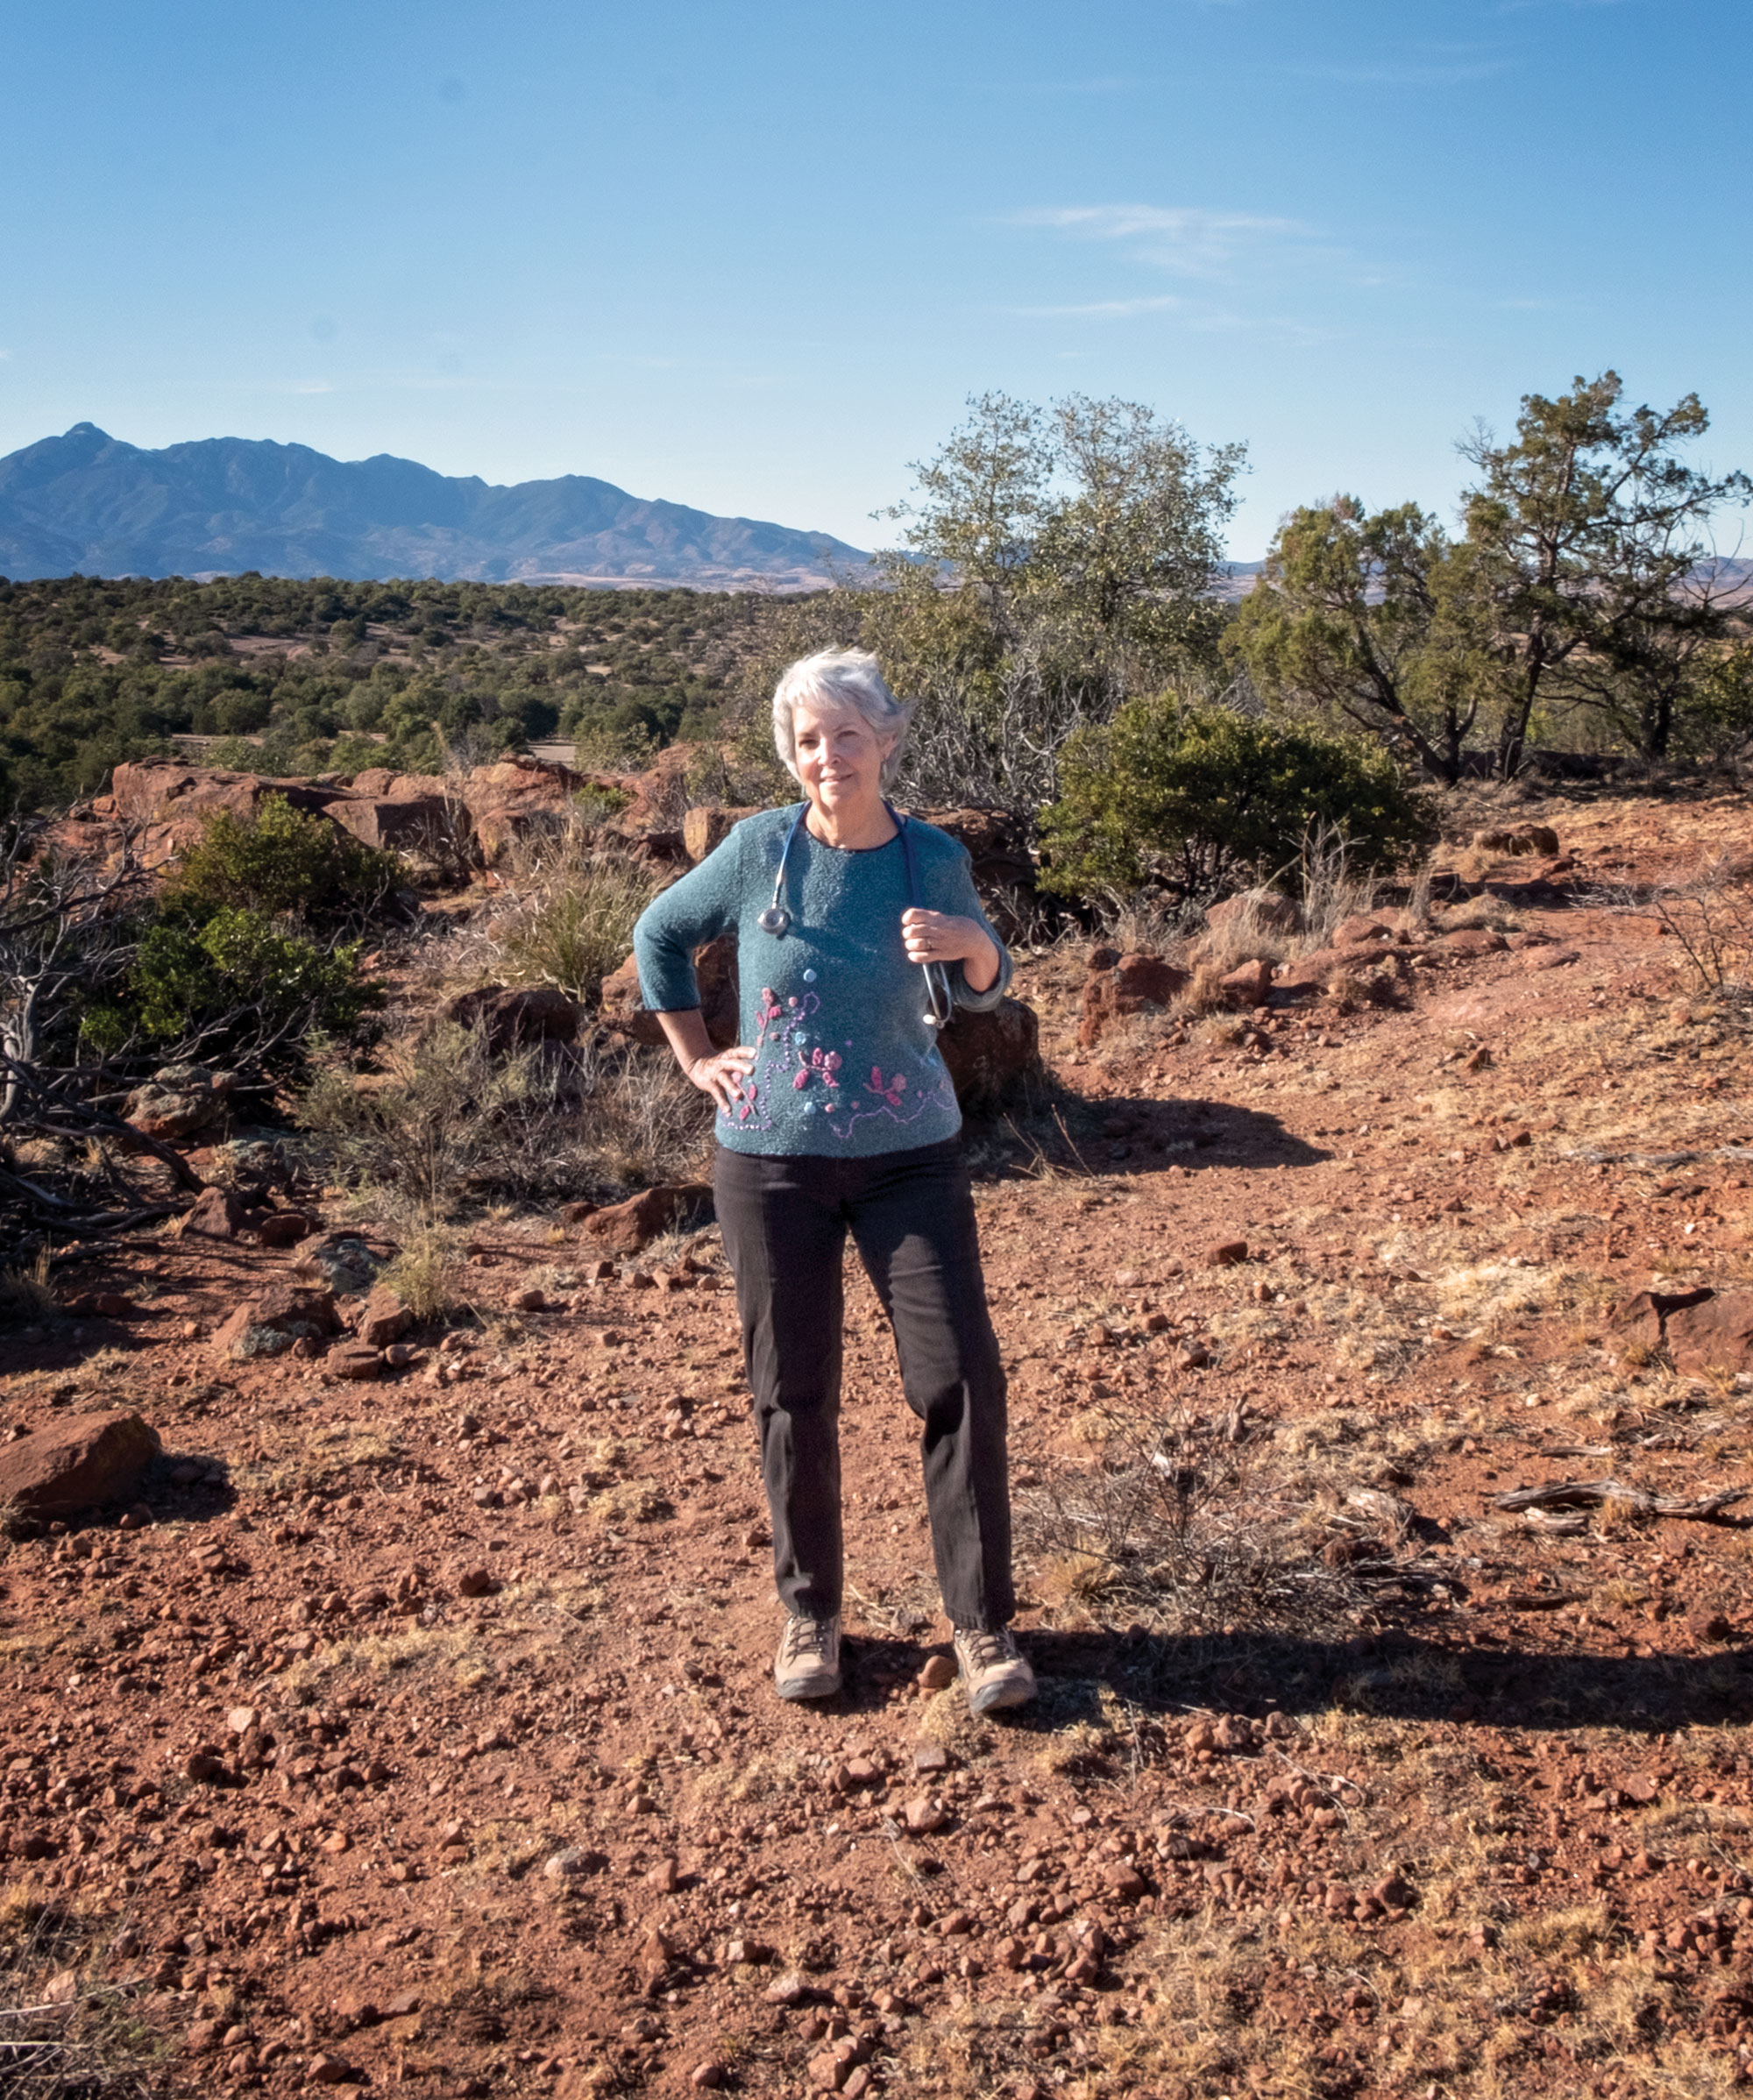 When she isn't treating the town's medical woes, Dr. Molly Anderson leads a hiking club in Patagonia.; Photo by Mirelle Inglefield